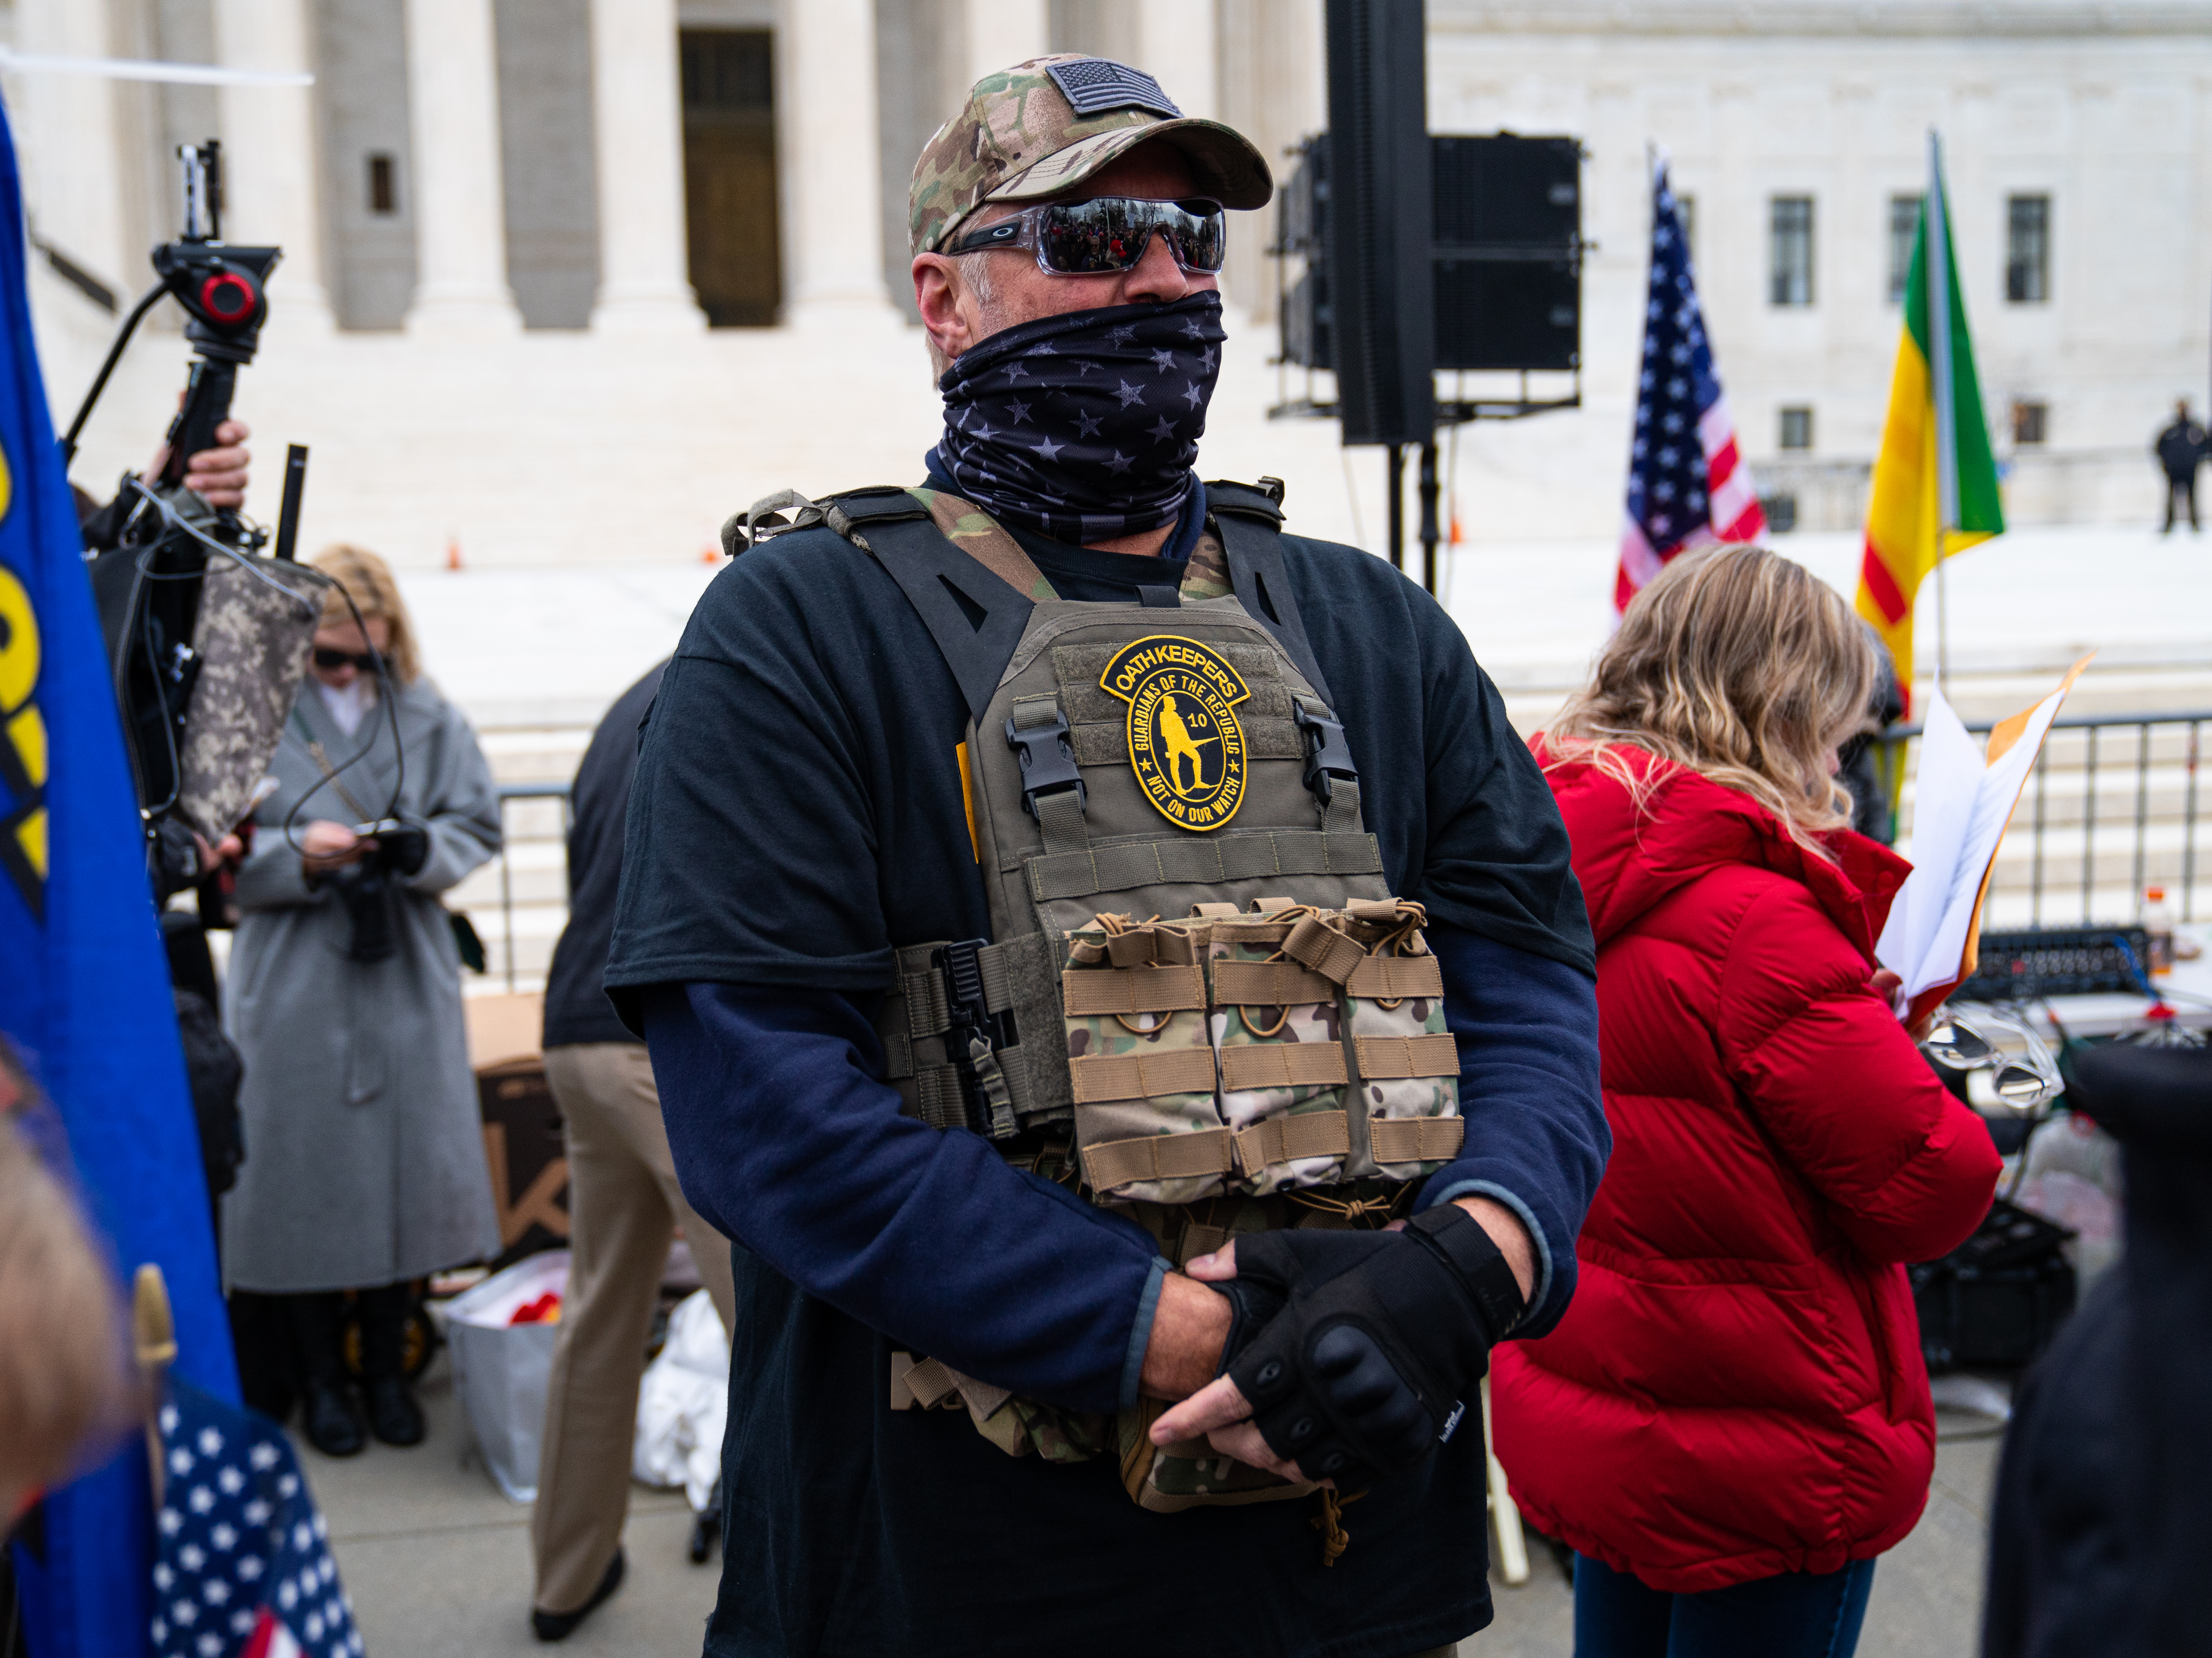 A person wearing military-style gear at a Washington, DC, rally.